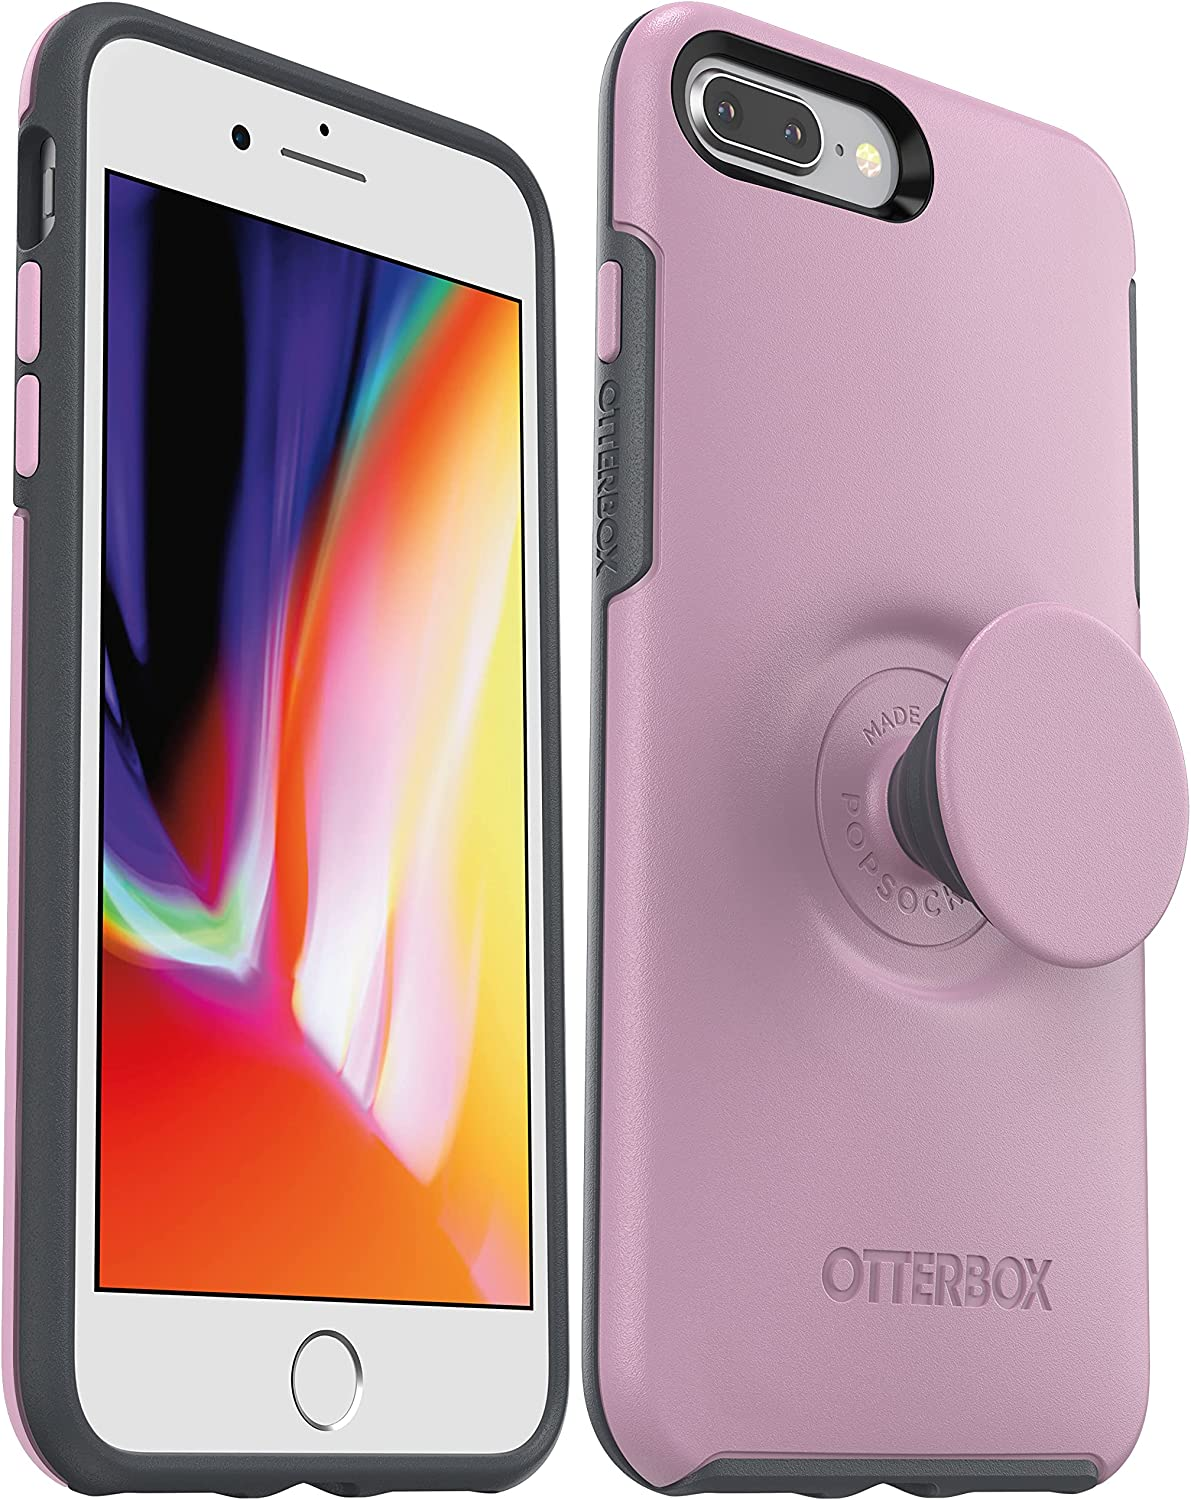 OtterBox + Pop Symmetry Series Case for iPhone 8 Plus & iPhone 7 Plus (ONLY) Non-Retail Packaging - Mauveolous